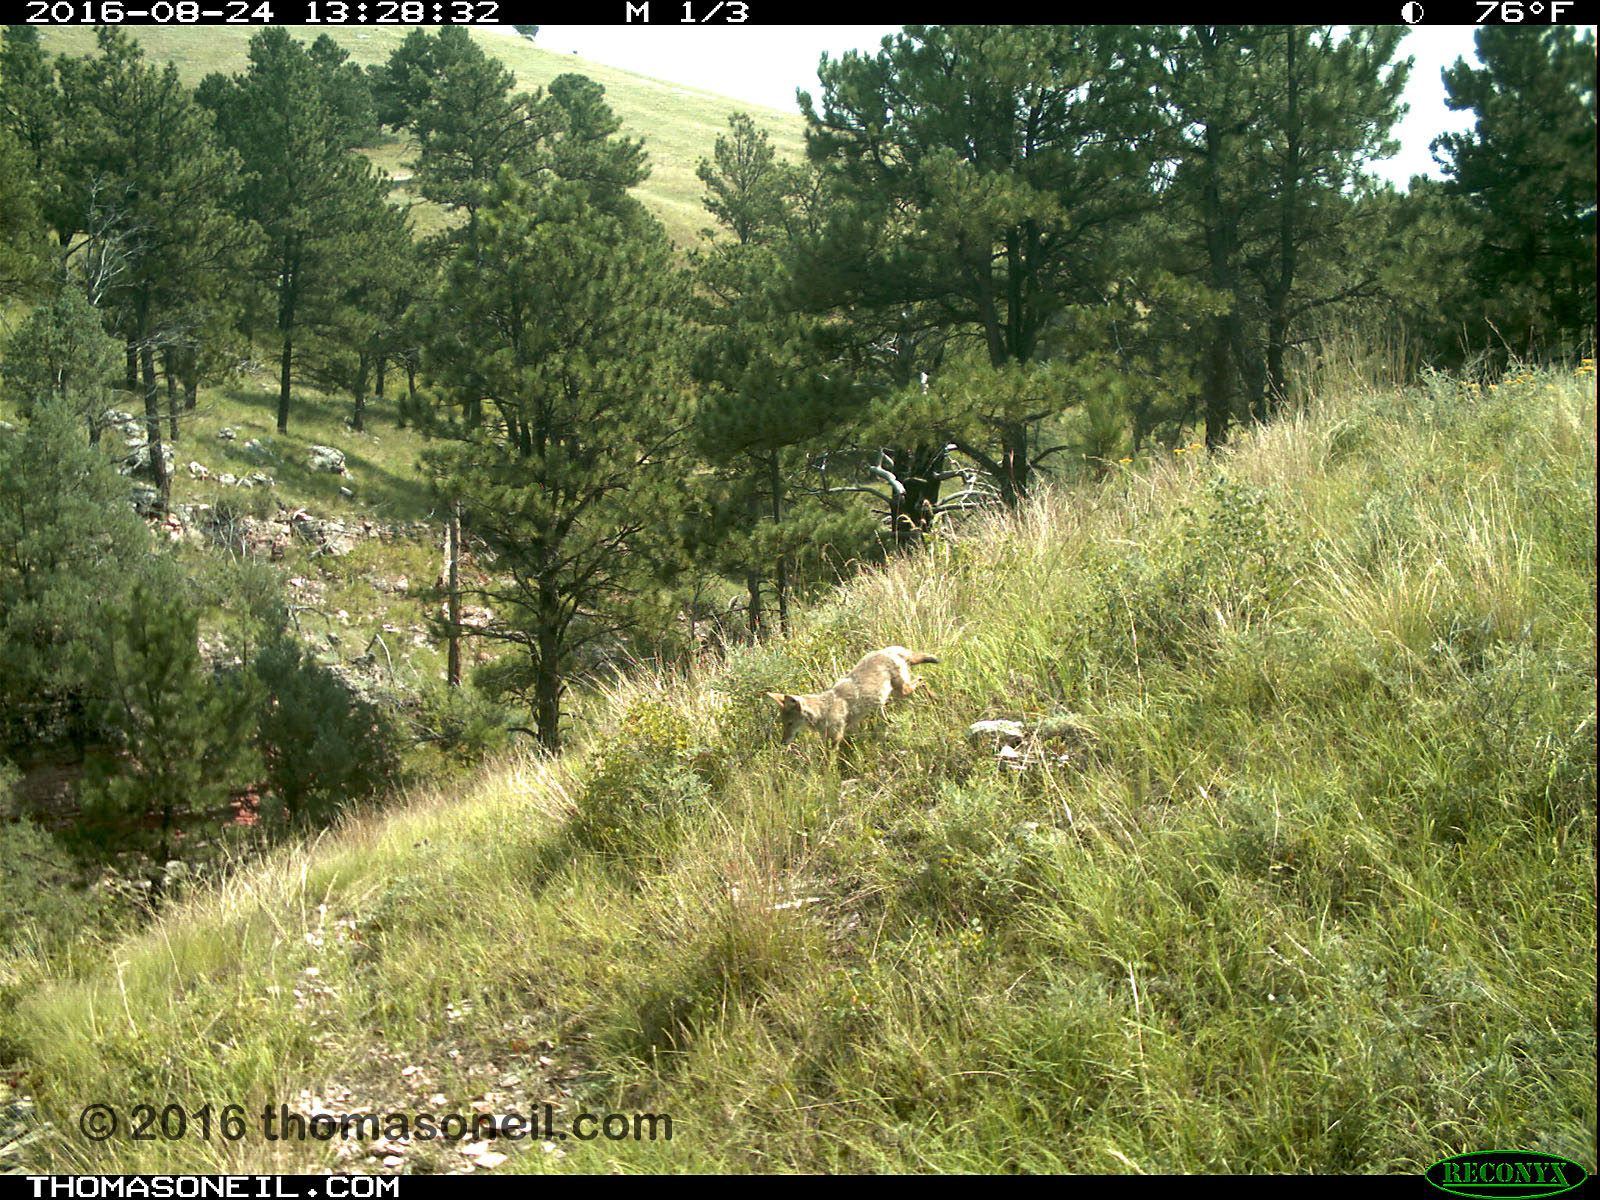 Coyote on trailcam, Wind Cave National Park, Aug. 24, 2016.